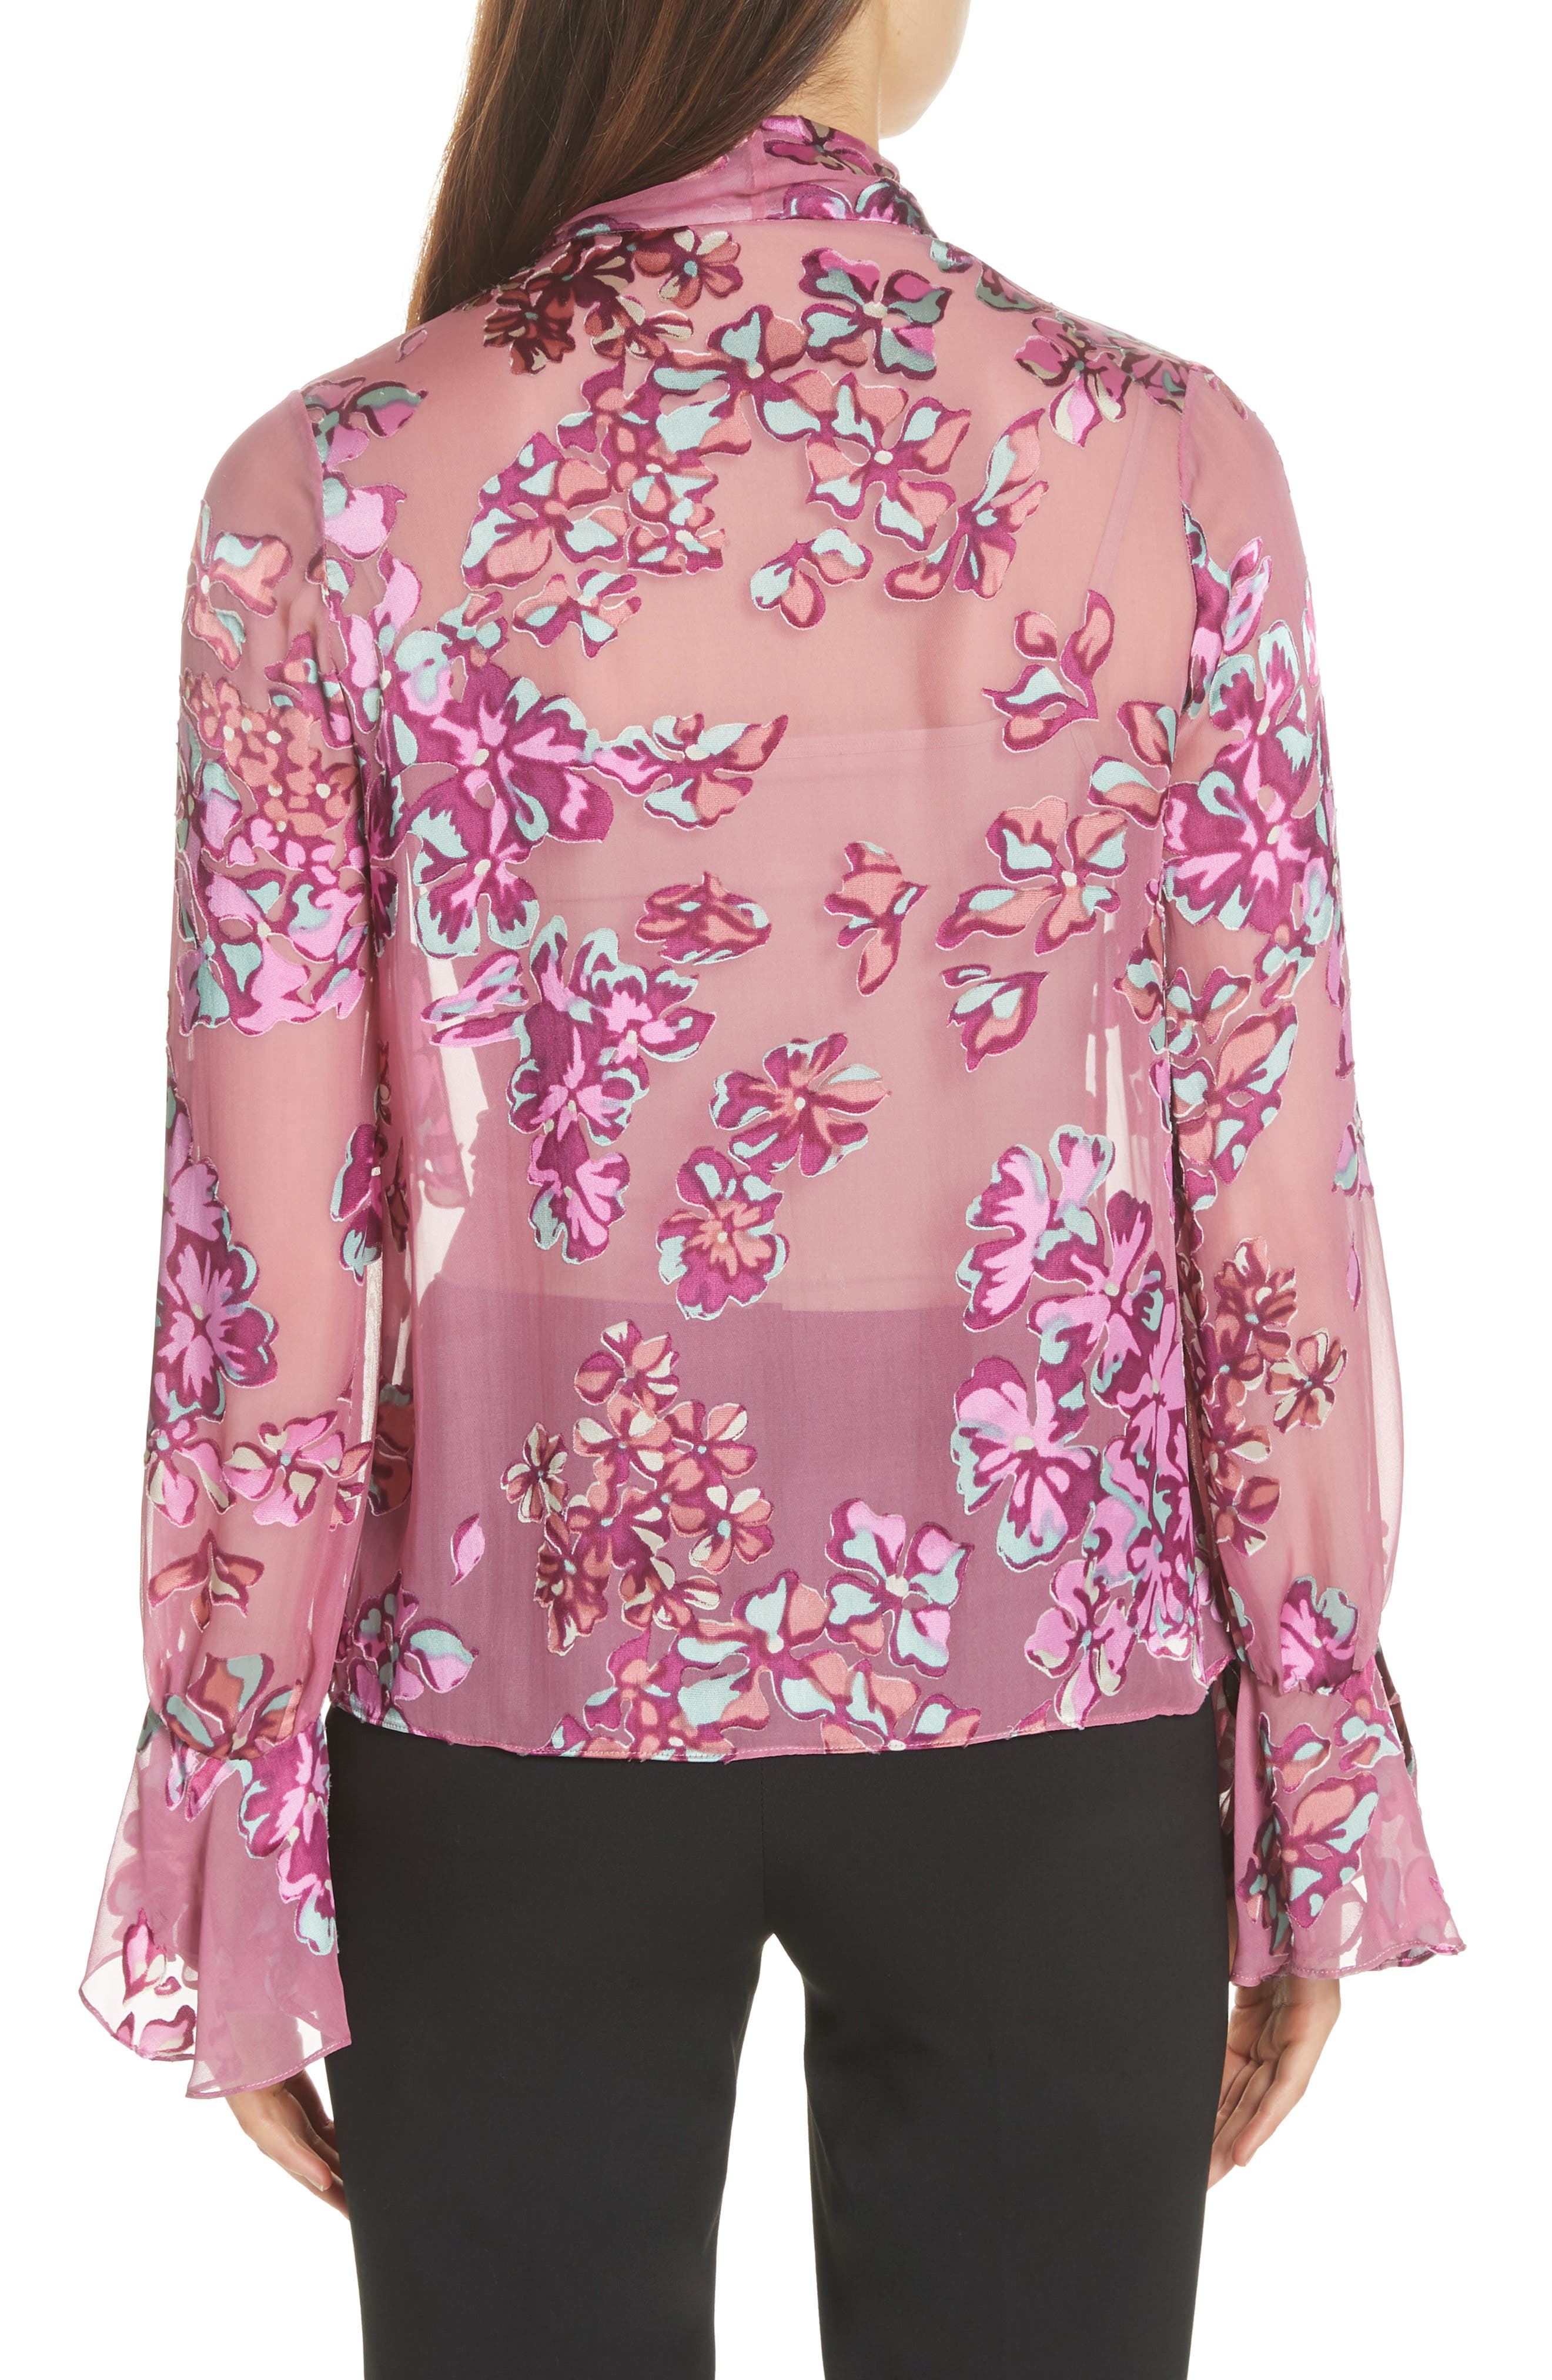 Lauren Floral Tie Neck Top,                             Alternate thumbnail 2, color,                             660